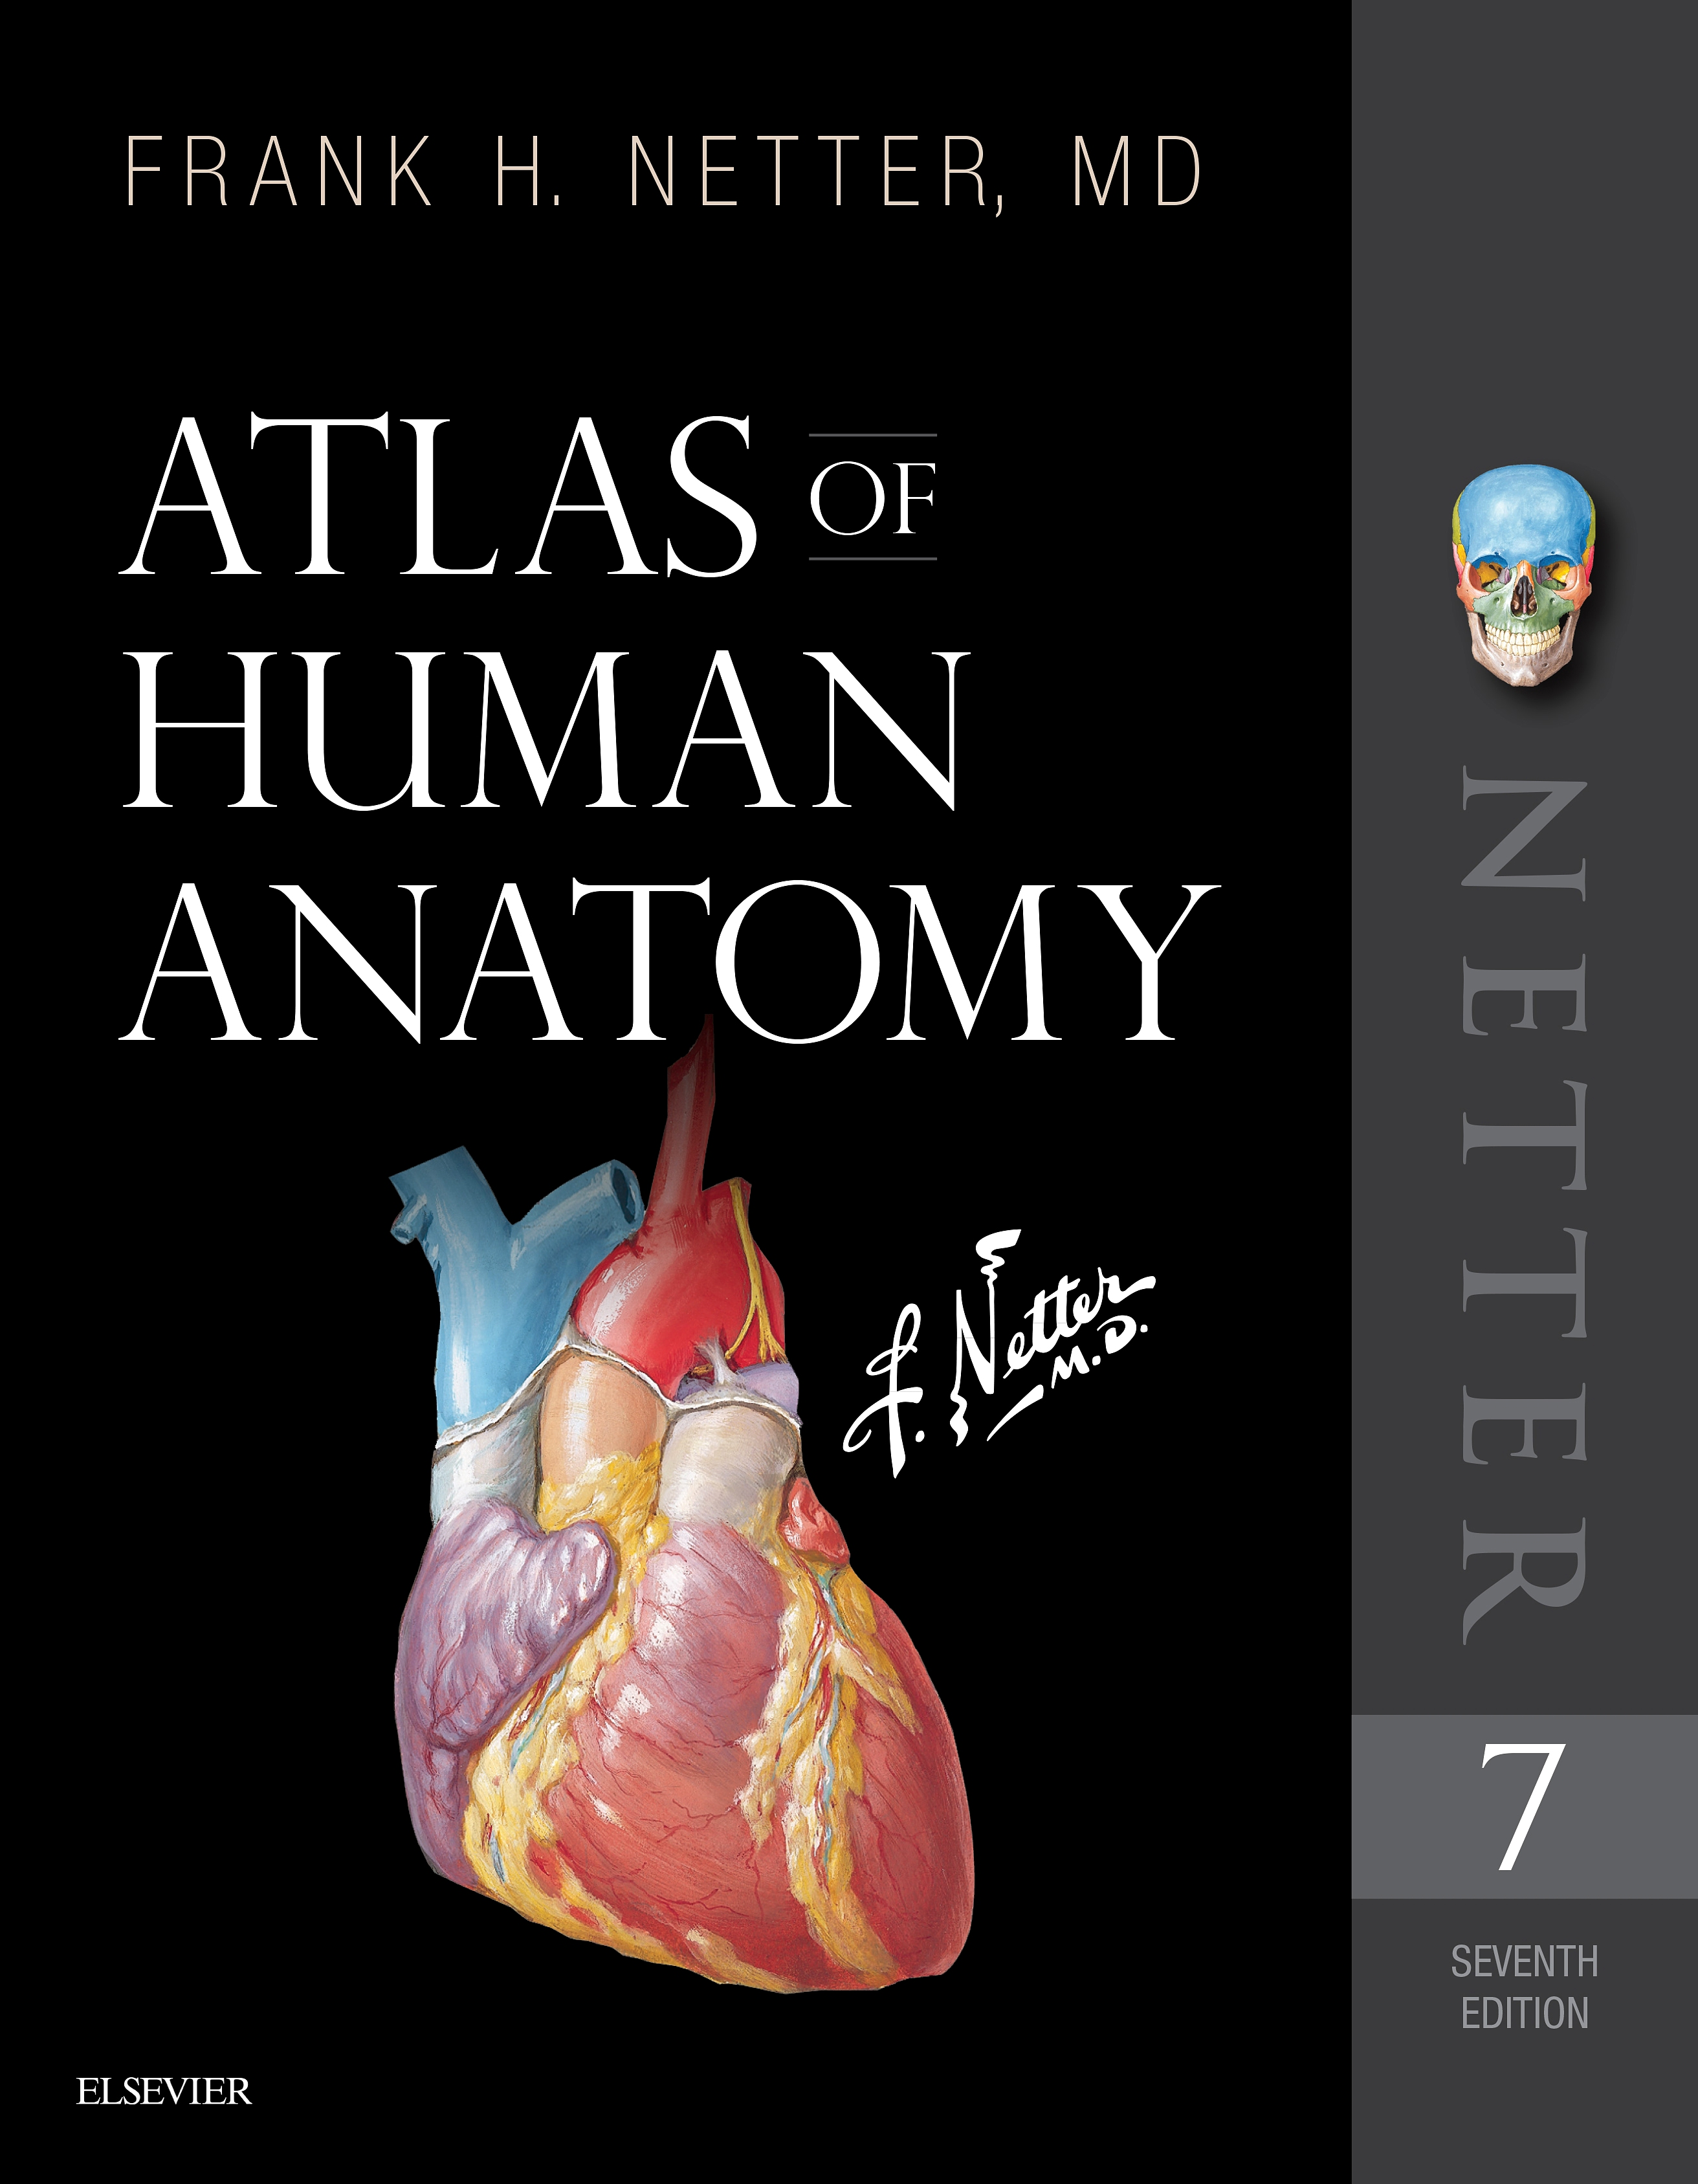 Evolve Resources for Atlas of Human Anatomy, 7th Edition